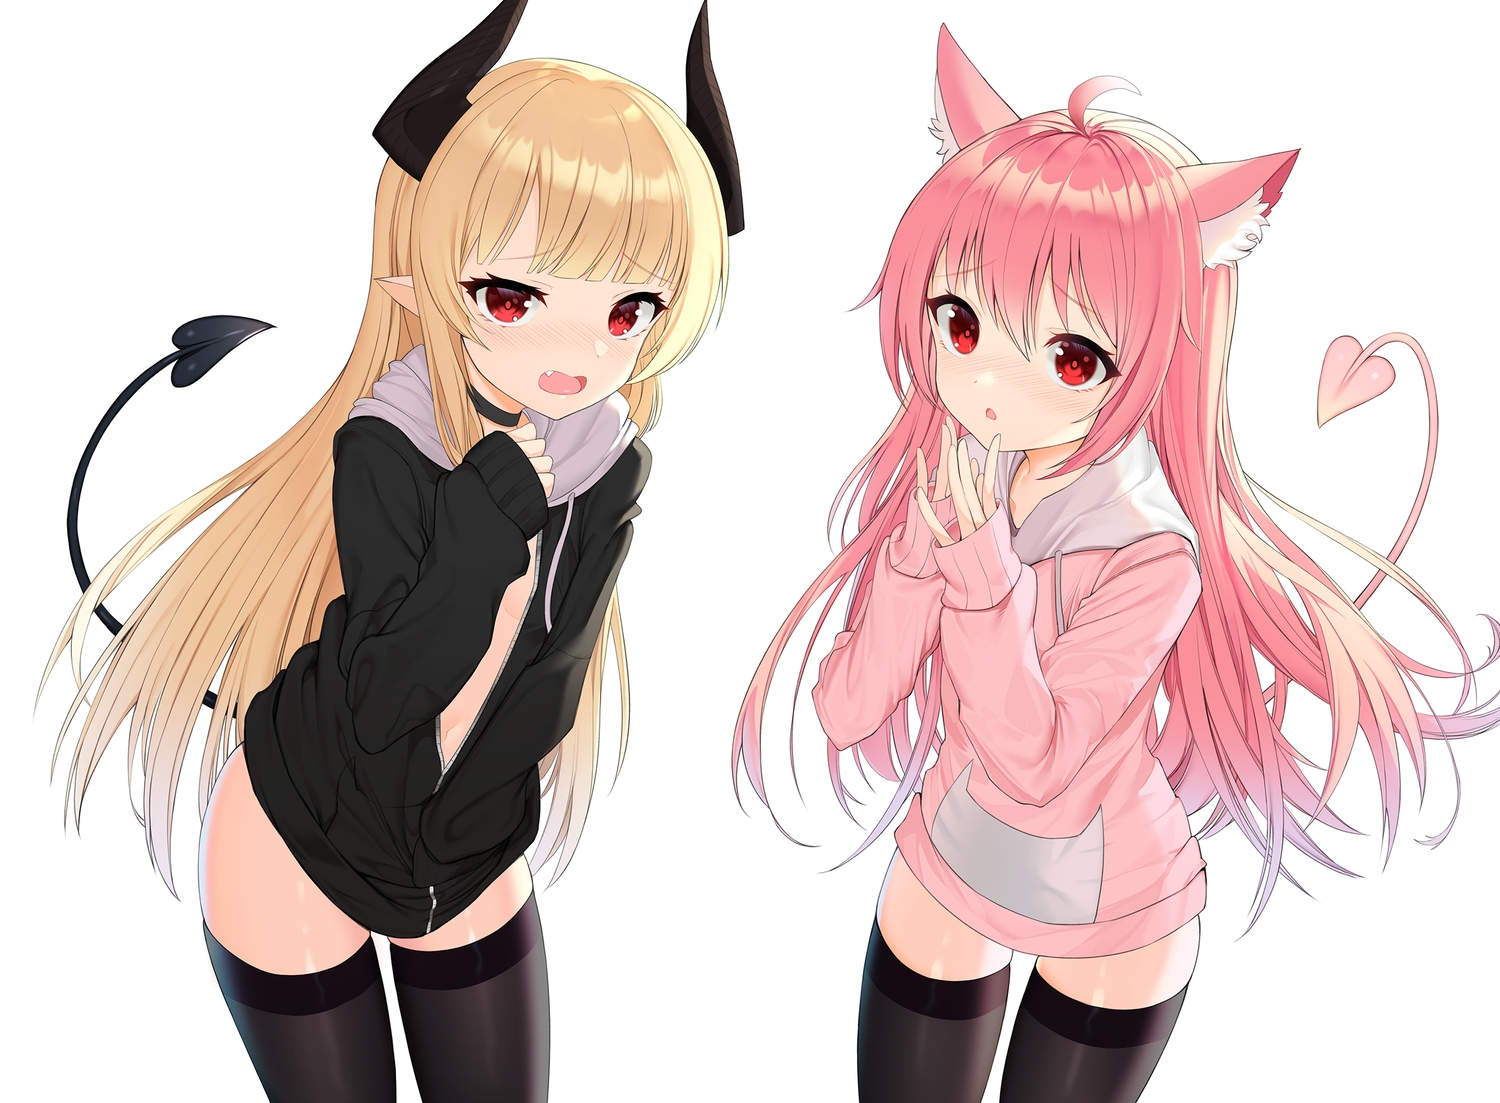 animal_ears blonde_hair catgirl choker demon fang flat_chest hoodie horns long_hair no_bra original pink_hair pointed_ears red_eyes tail thighhighs tttanggvl white zettai_ryouiki